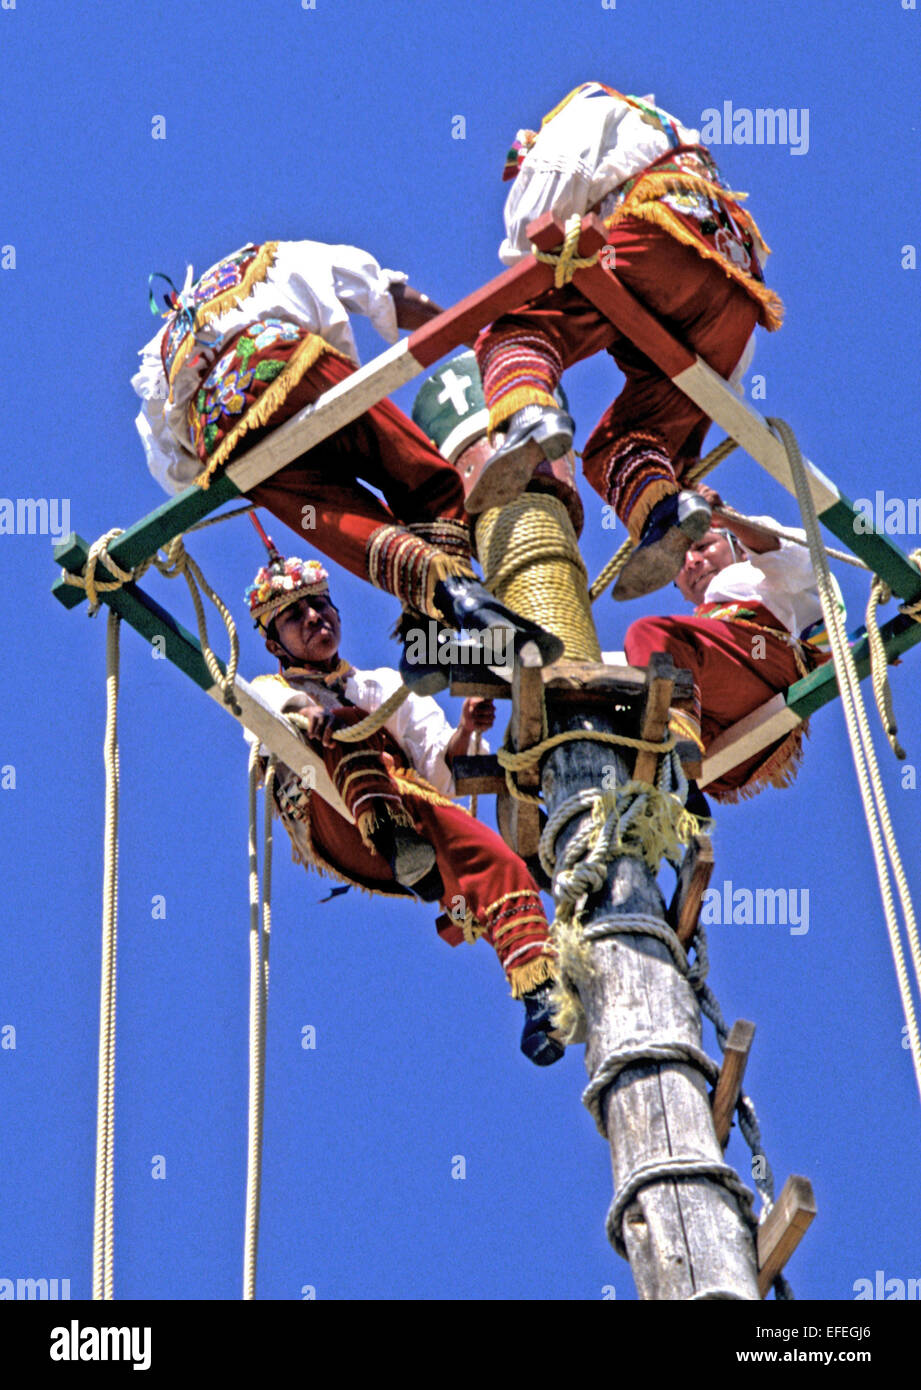 Mexico - Totonac Indians perform intricate weaving dance routines on top of a pole nearly 100 feet up in the air. - Stock Image